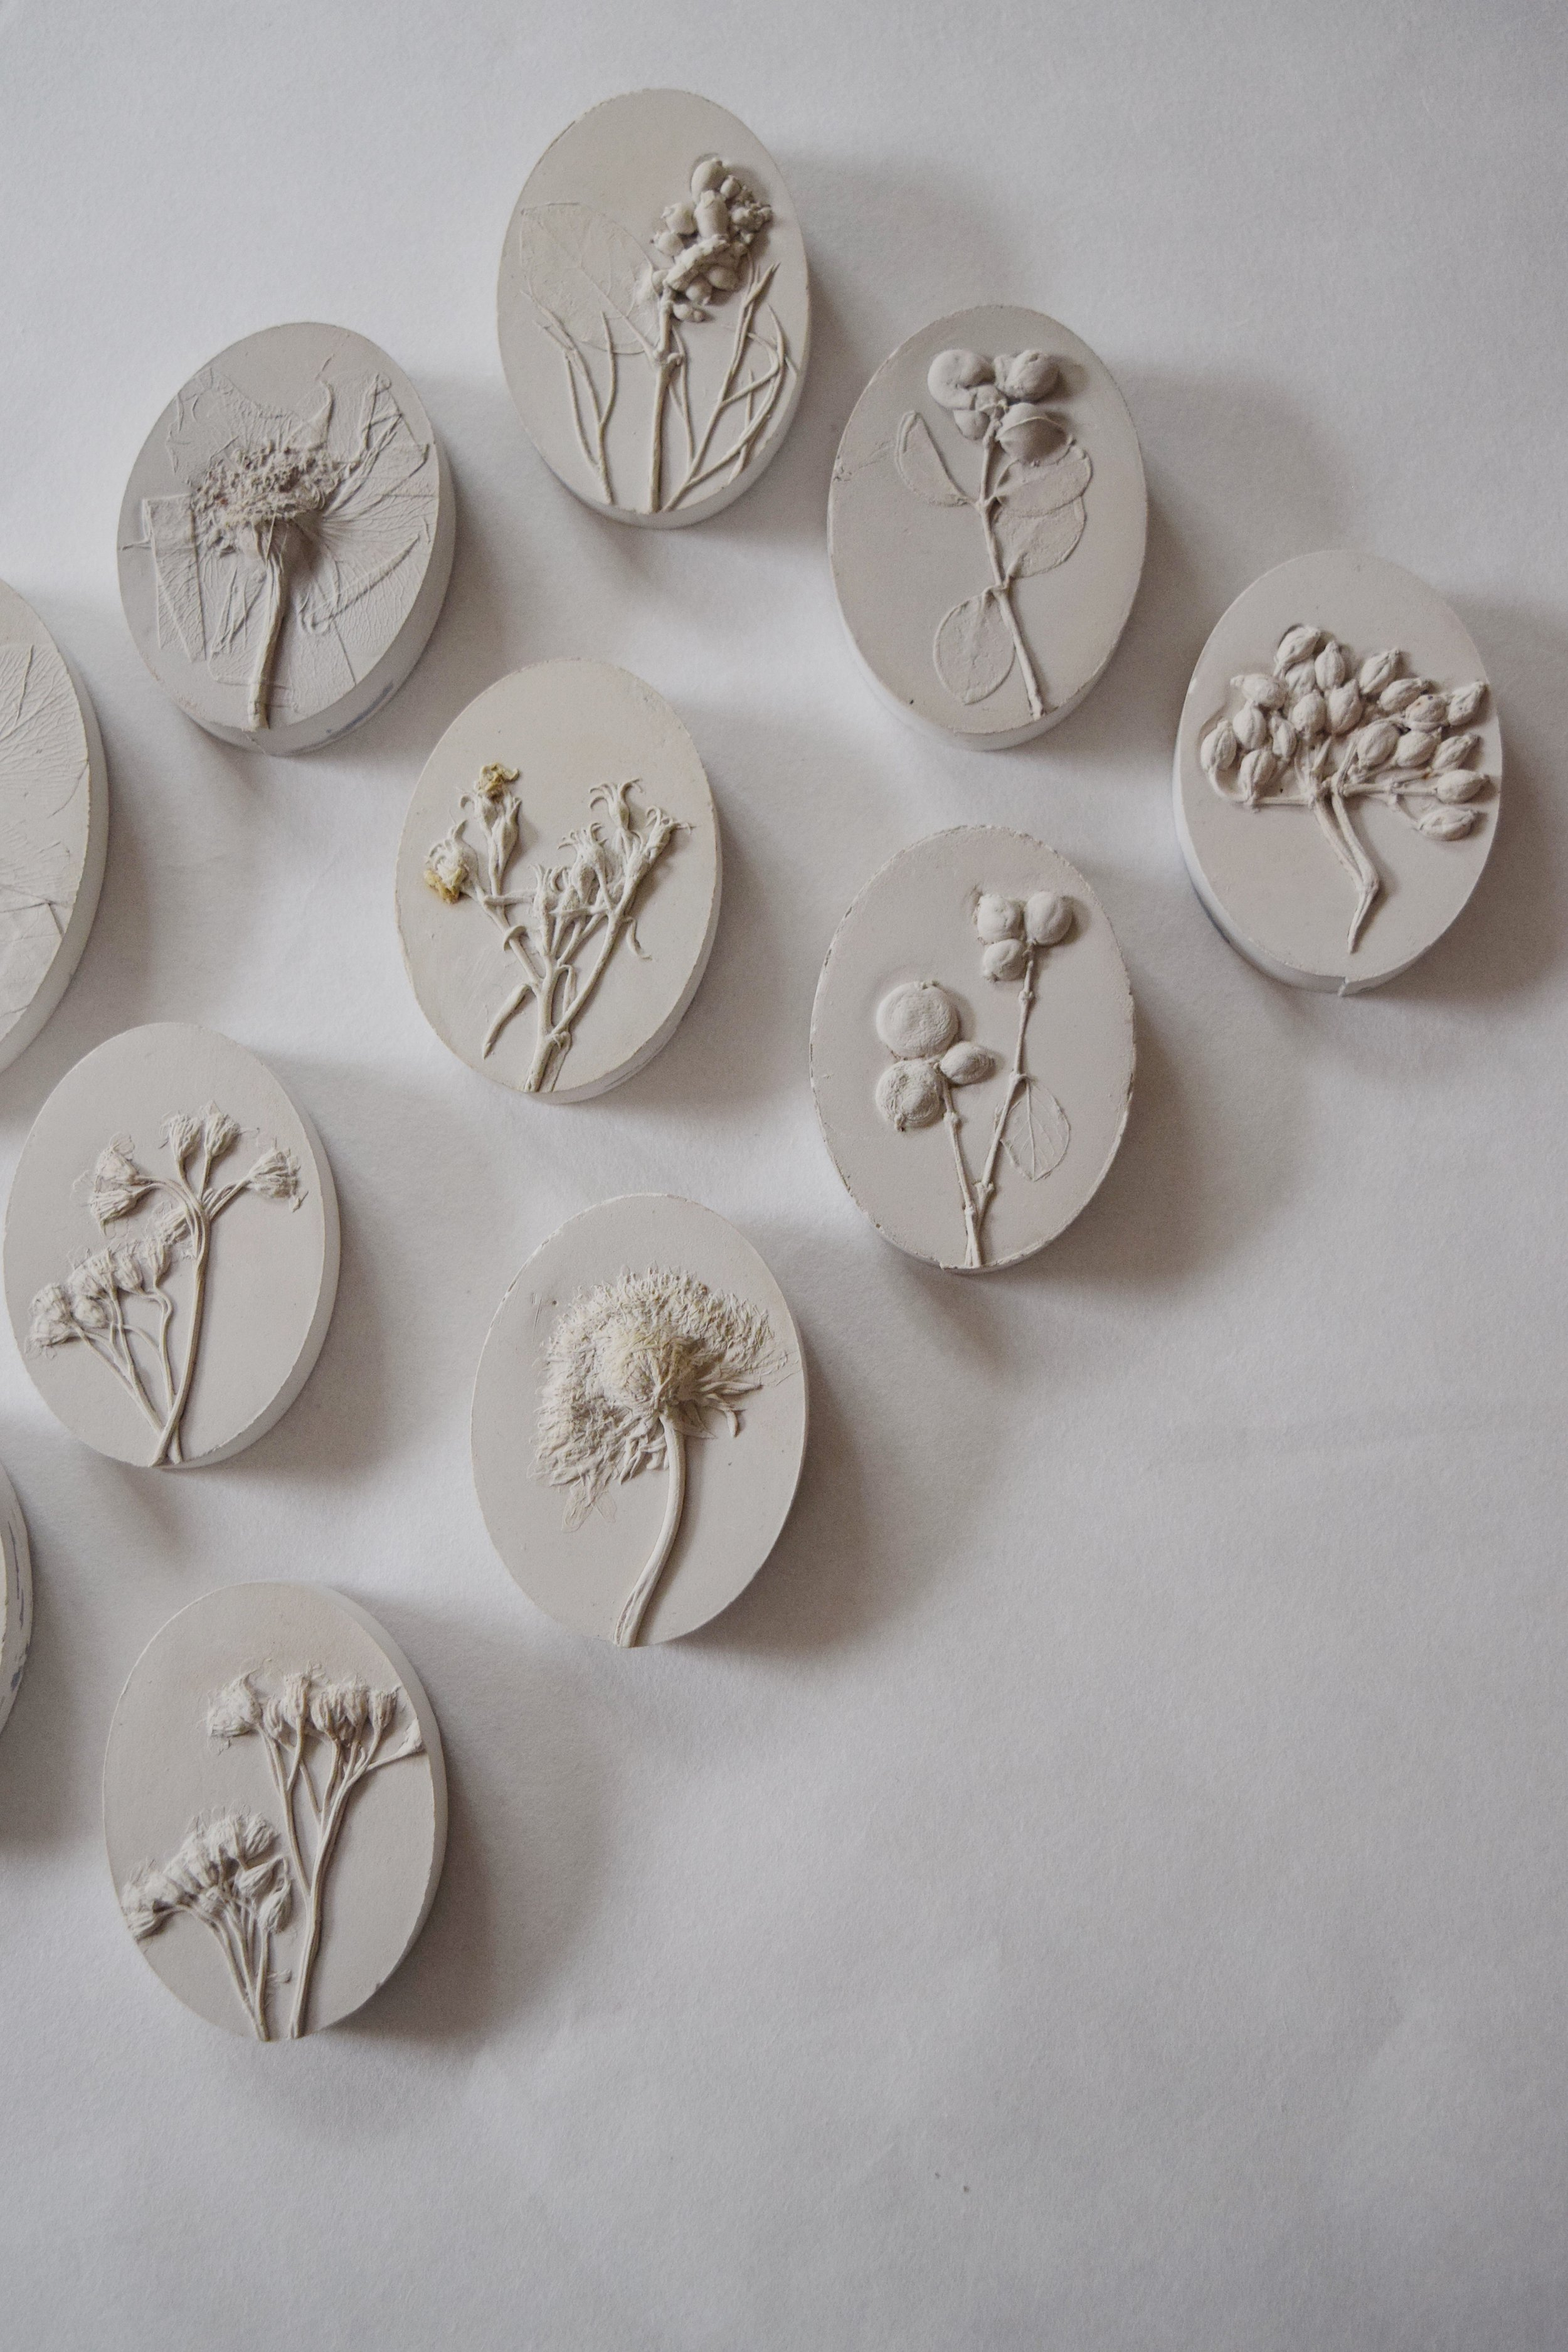 or mix and match - flowers to create a mini floral mix collection